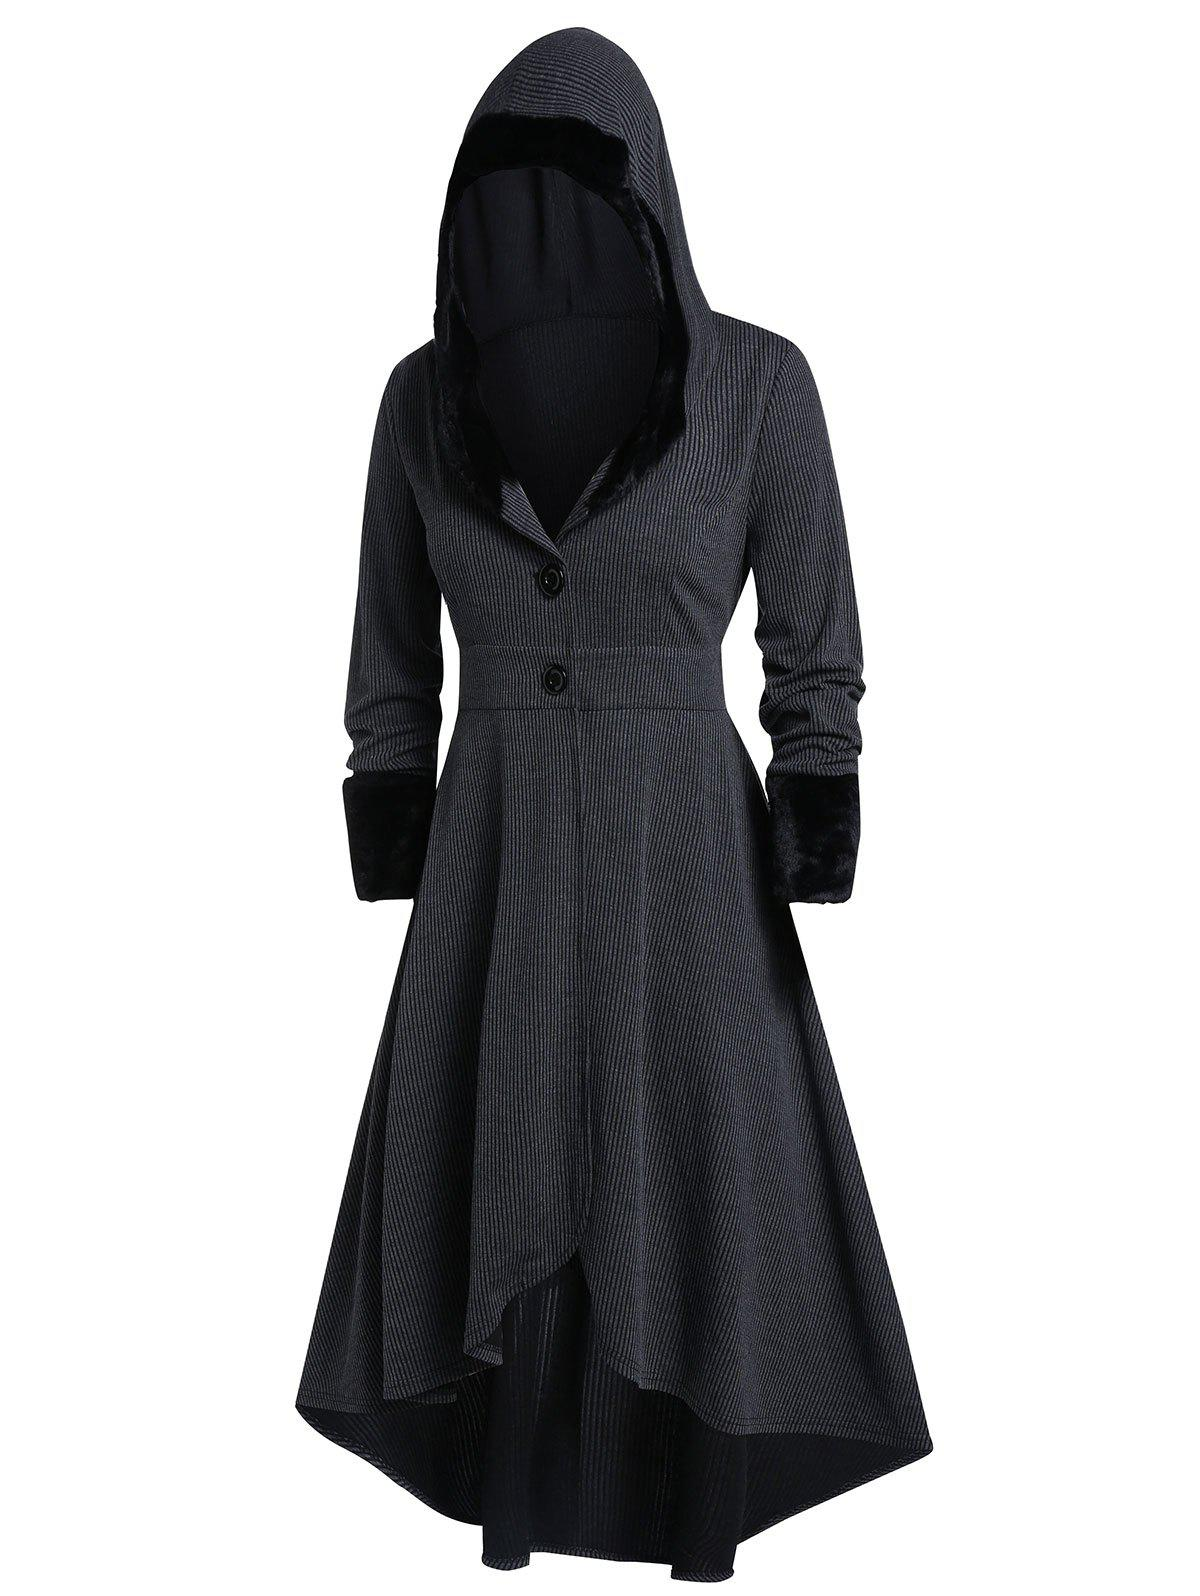 Plus Size Hooded Gothic Long Coat - BLACK 2X